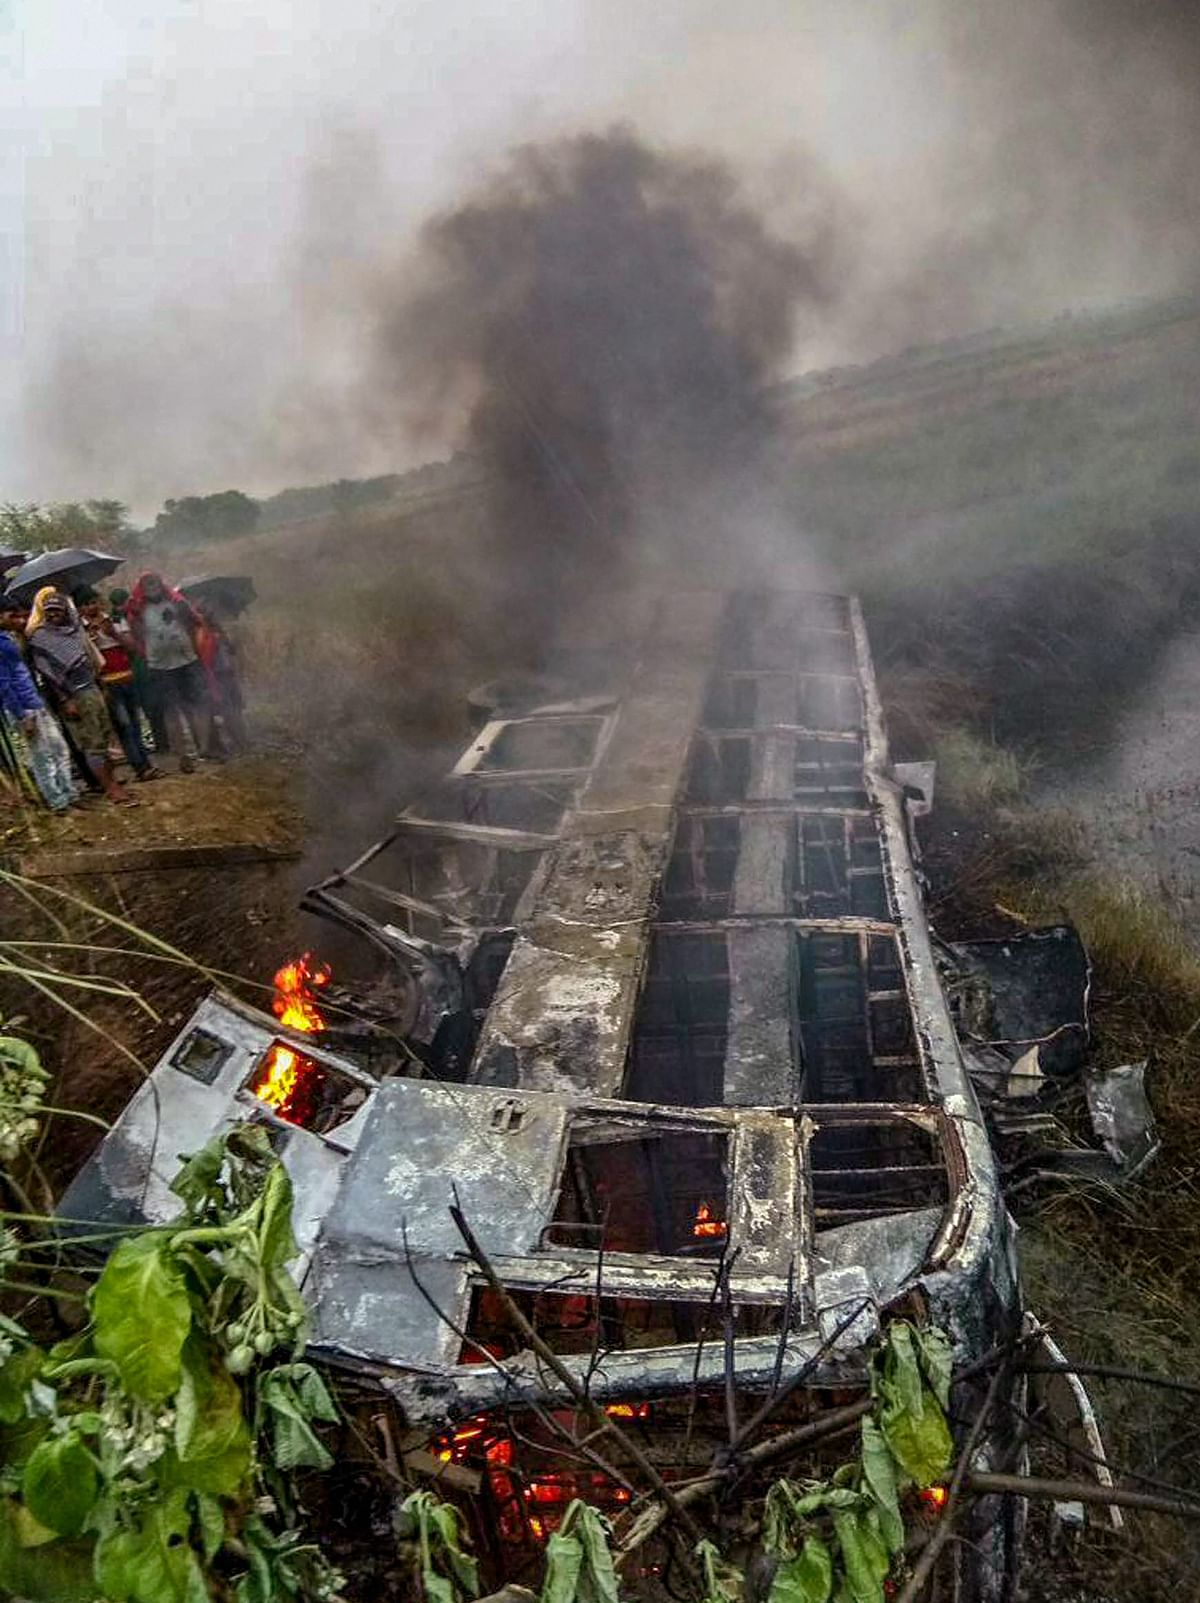 People watch the passenger bus which caught fire claiming two lives in Motihari district of Bihar on Thursday, 3 May.